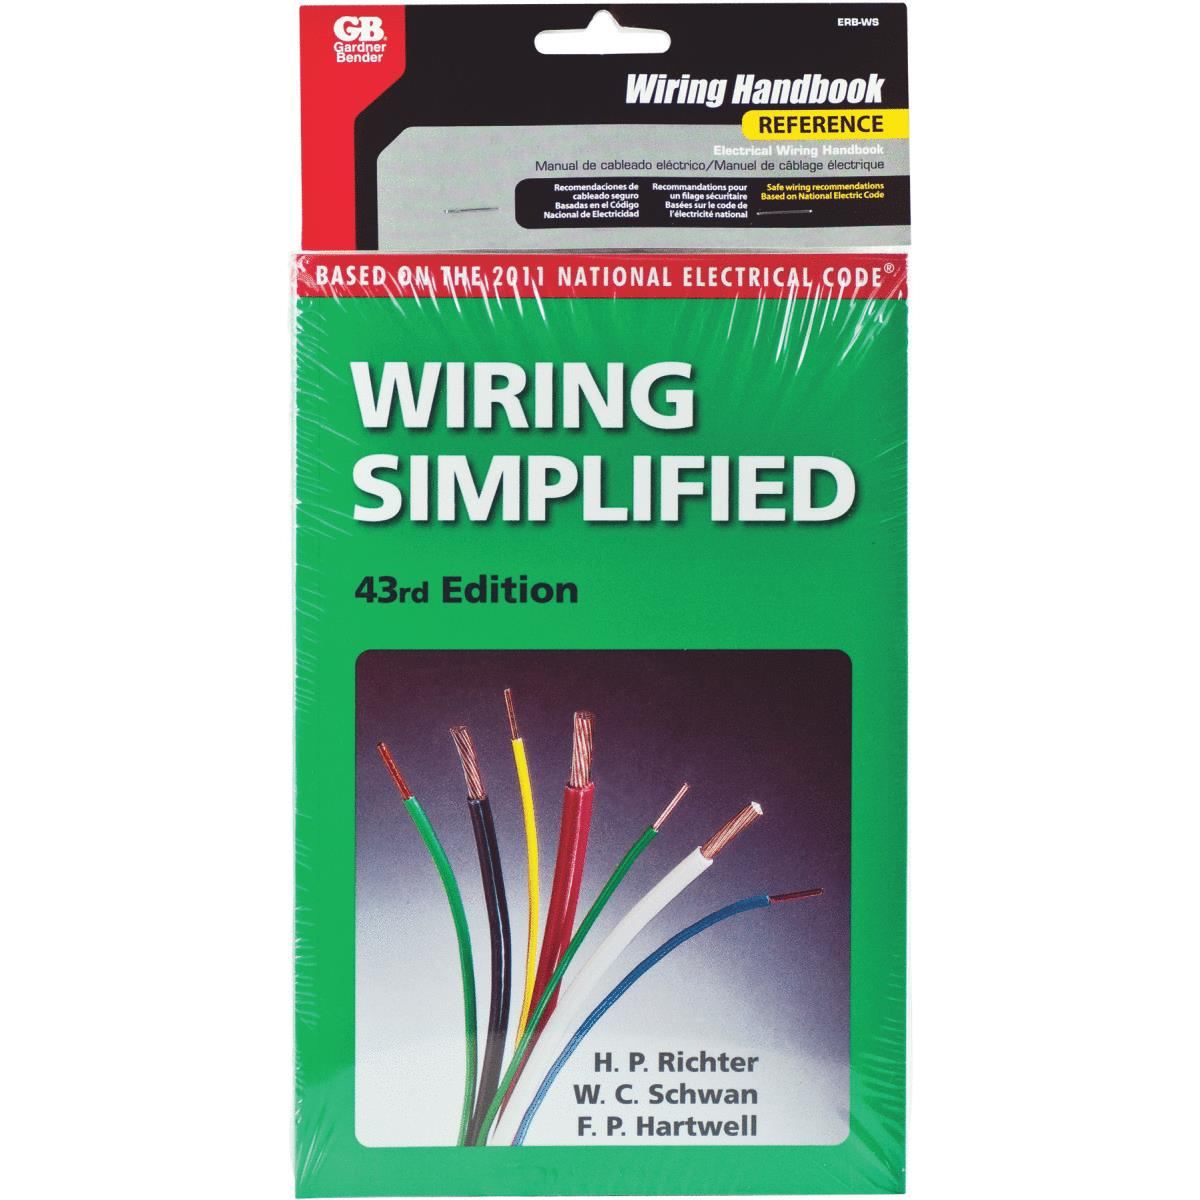 electrical wiring simplified pocket reference book macdonald rh macdonaldindustrial com electrical wiring books free download electrical wiring books free download